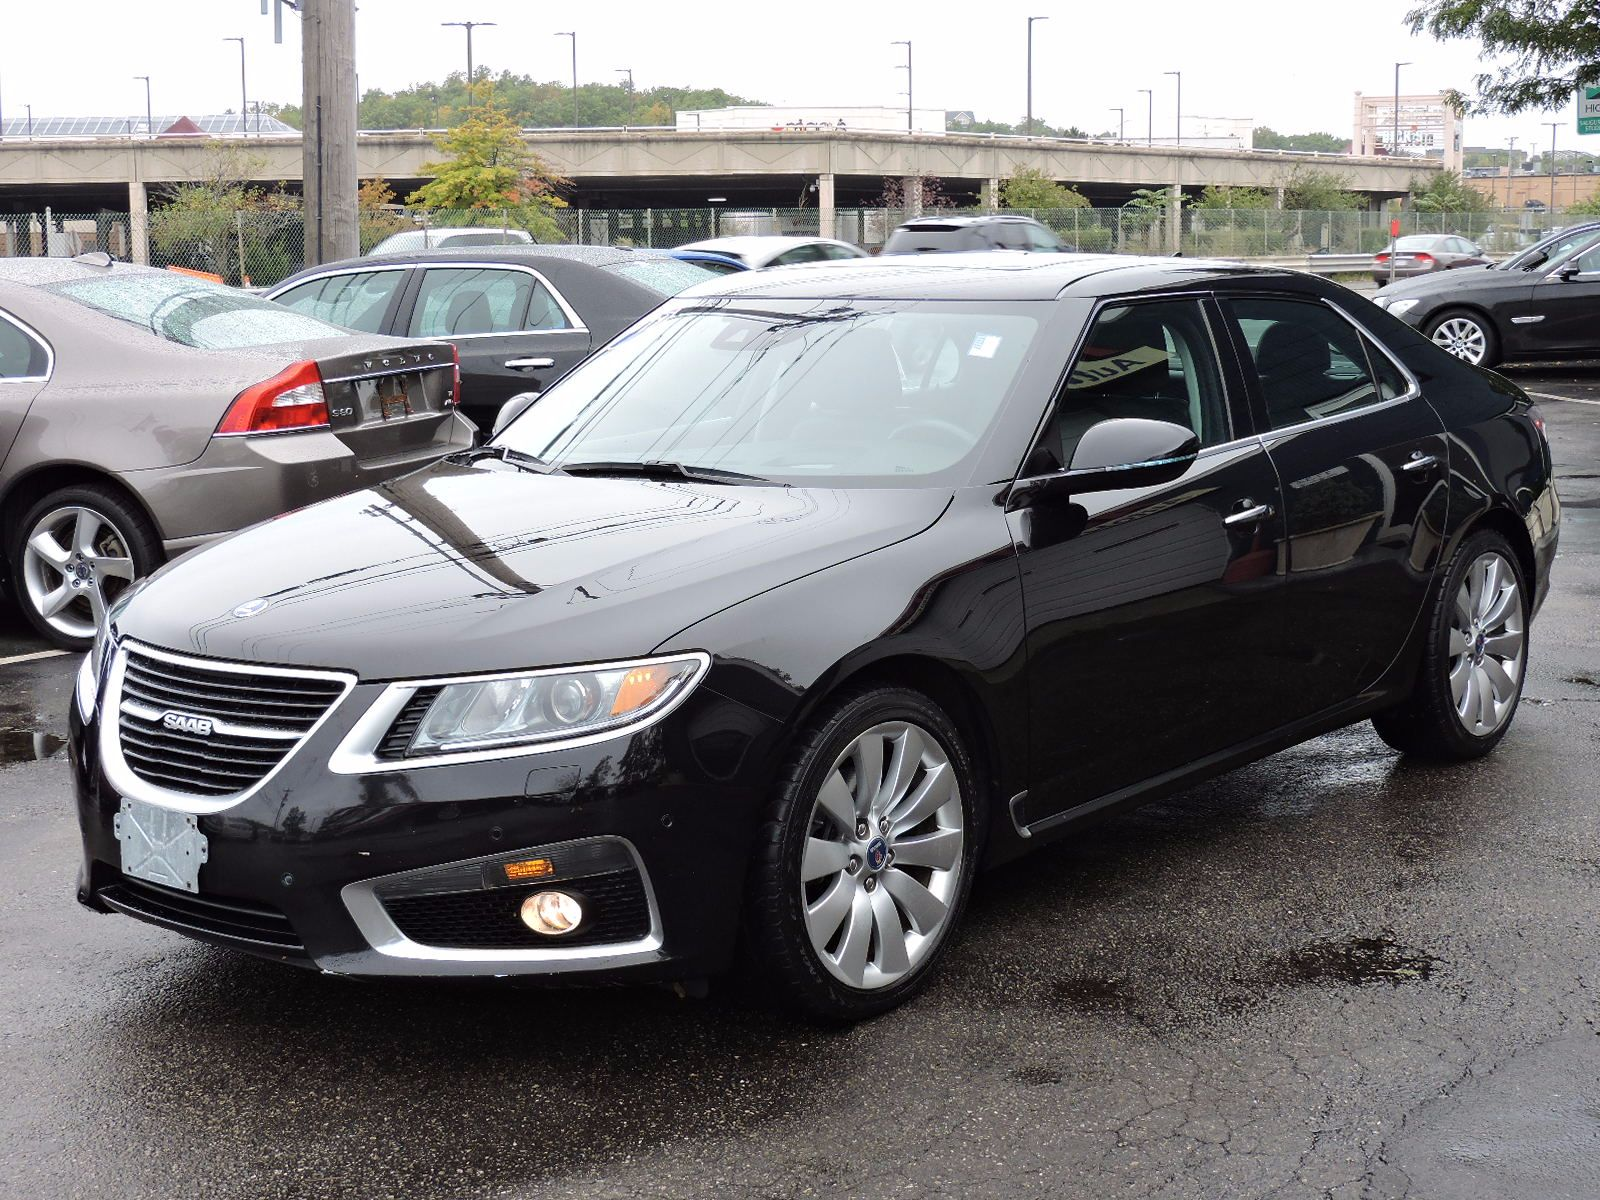 used 2011 saab 9 5 aero xwd at saugus auto mall. Black Bedroom Furniture Sets. Home Design Ideas